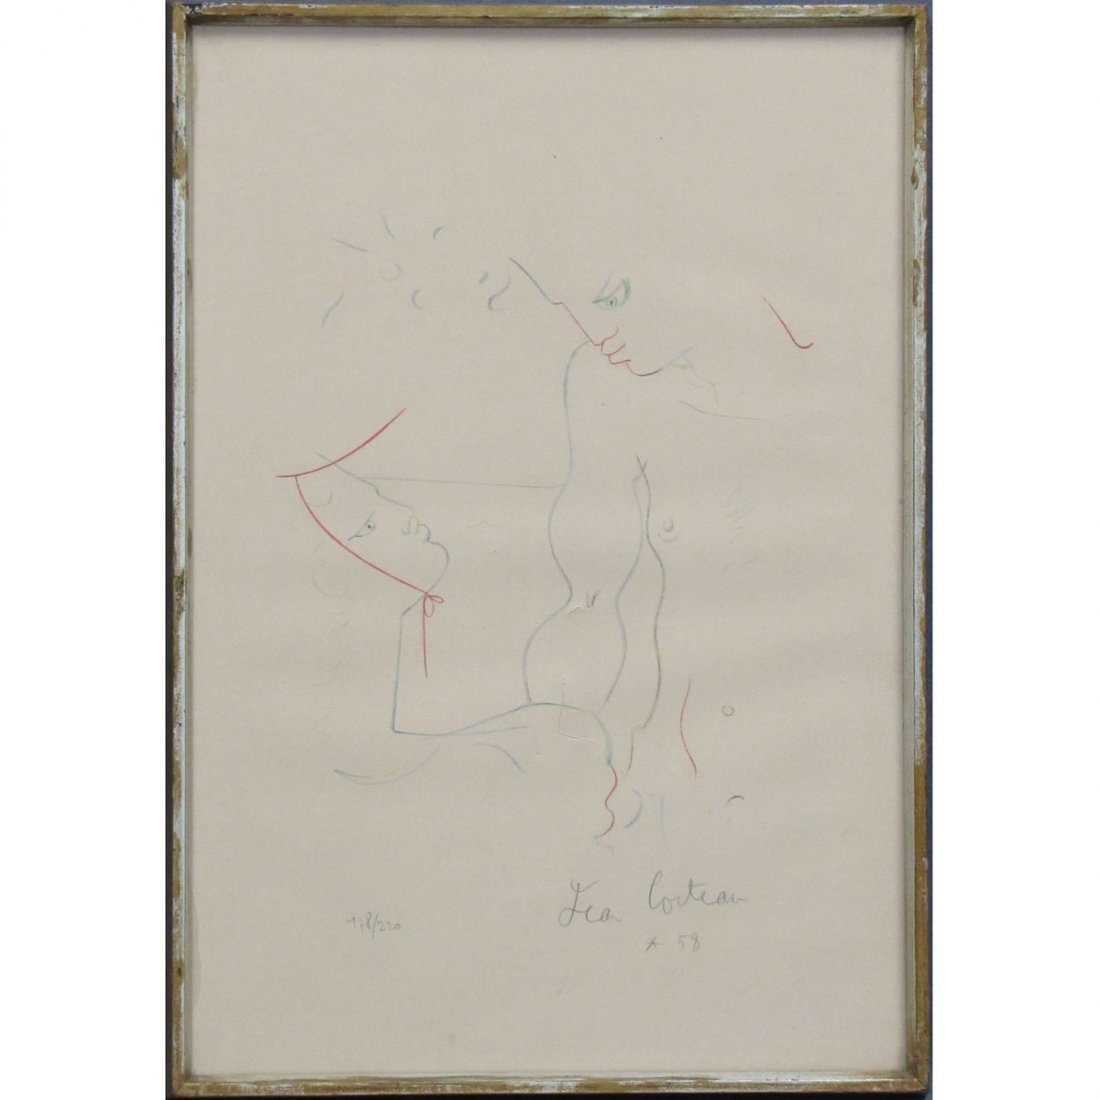 JEAN COCTEAU (FRENCH 1889-1963), LITHOGRAPH